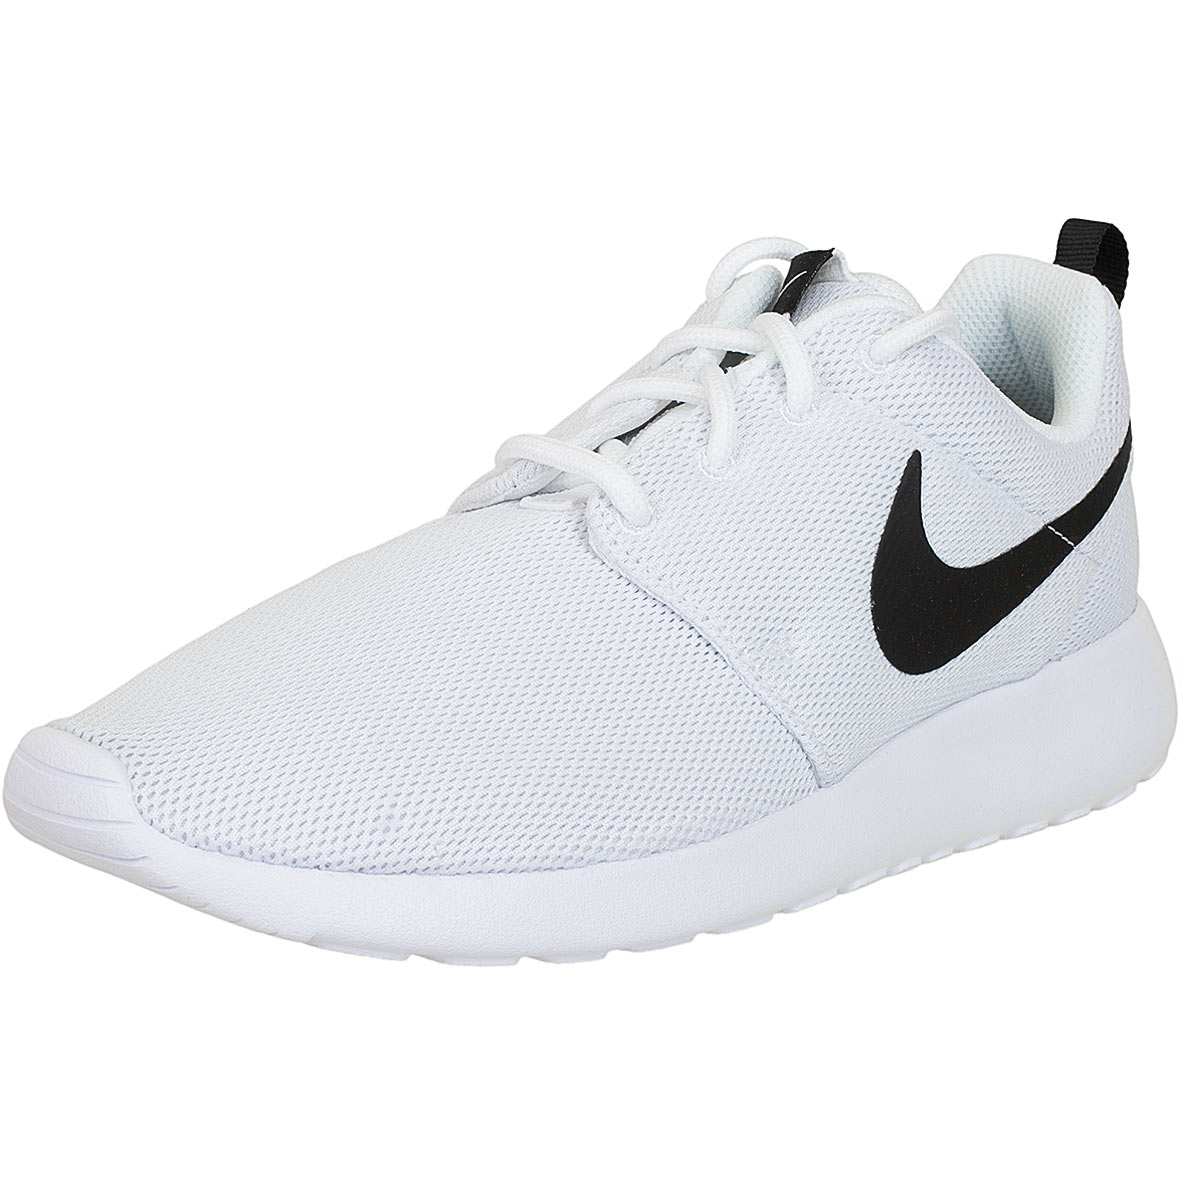 timeless design 09554 b3960 ... inexpensive nike damen sneaker roshe one weiß schwarz 7a8dd 17626  discount nike roshe one nike shoes online shop for sneakers trainers ...